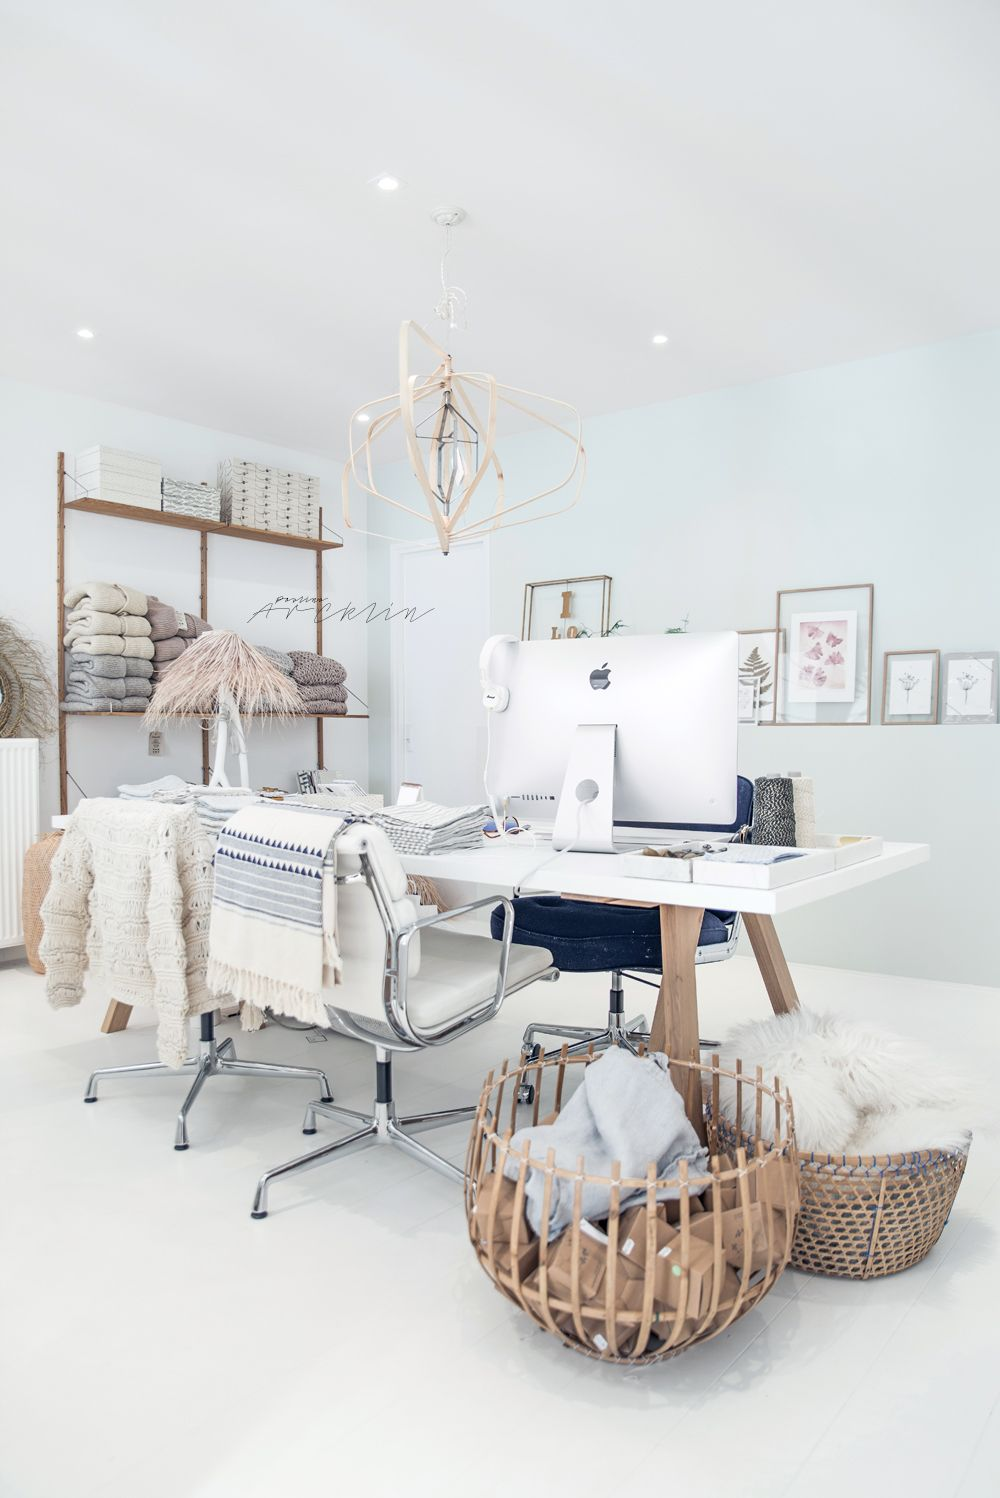 NEW L'ETOILE STORE! Therapy office decor, Home office